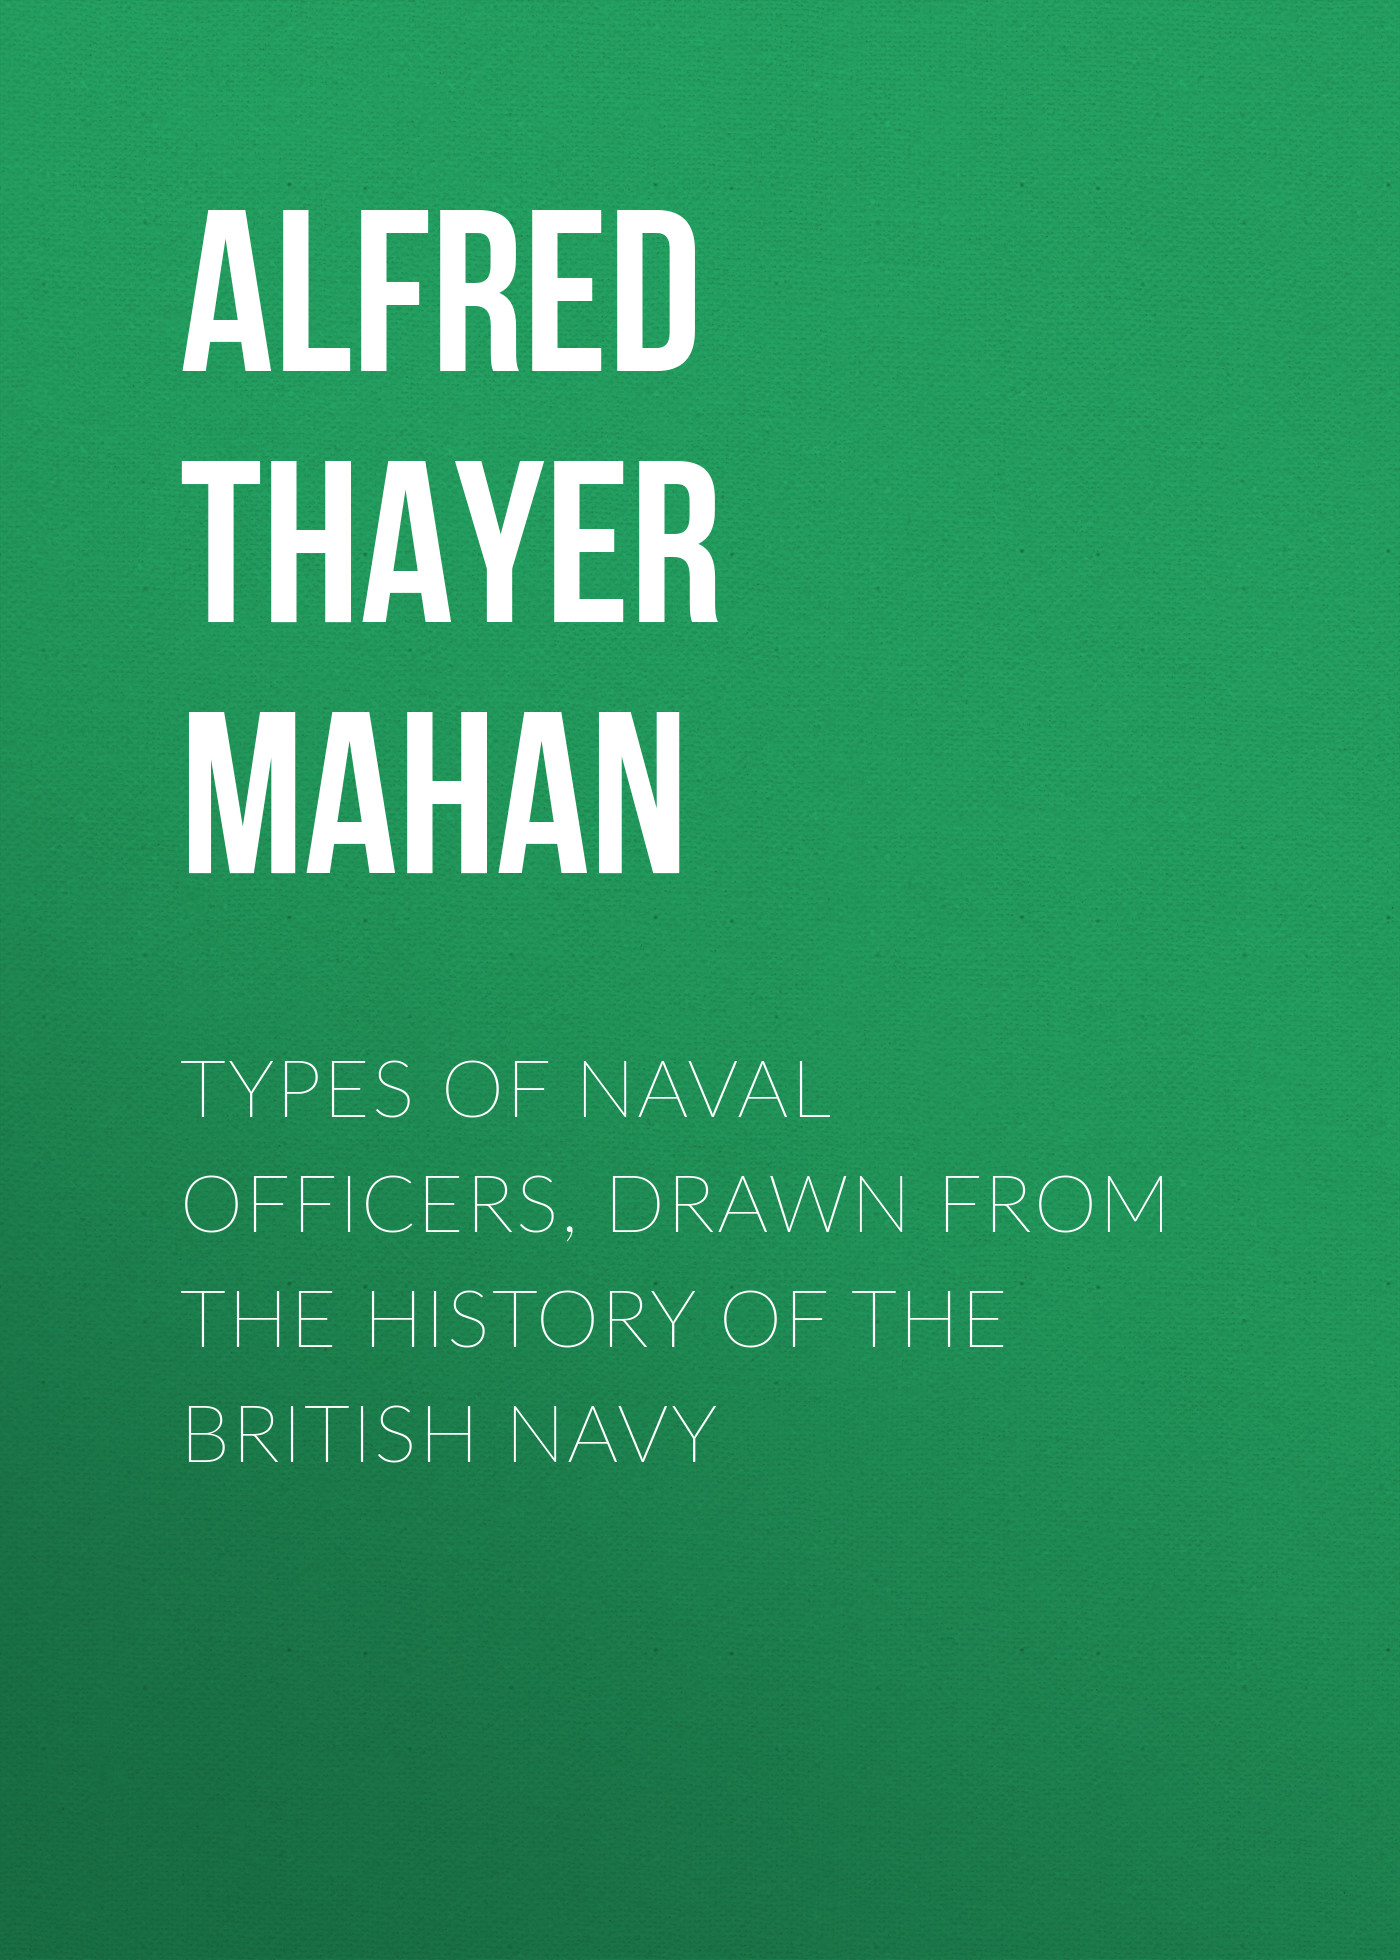 Alfred Thayer Mahan Types of Naval Officers, Drawn from the History of the British Navy alfred thayer mahan from sail to steam recollections of naval life